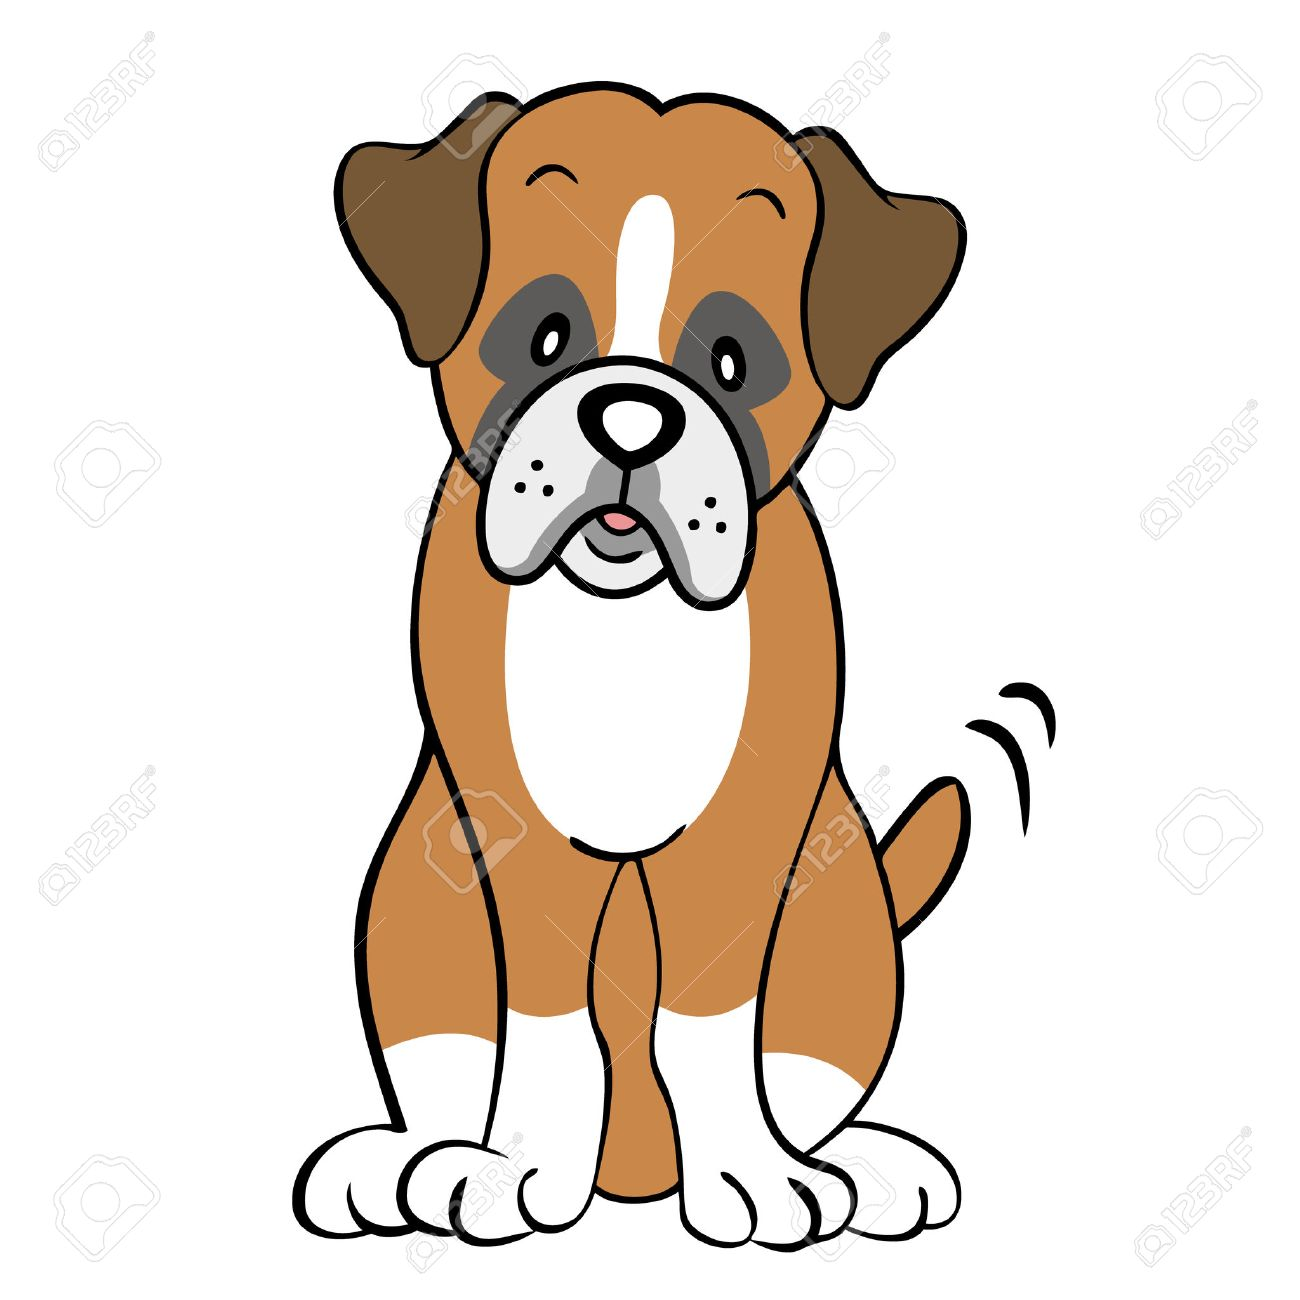 boxer dog isolated royalty free cliparts vectors and stock rh 123rf com boxer dog clipart black and white boxer dog clip art free